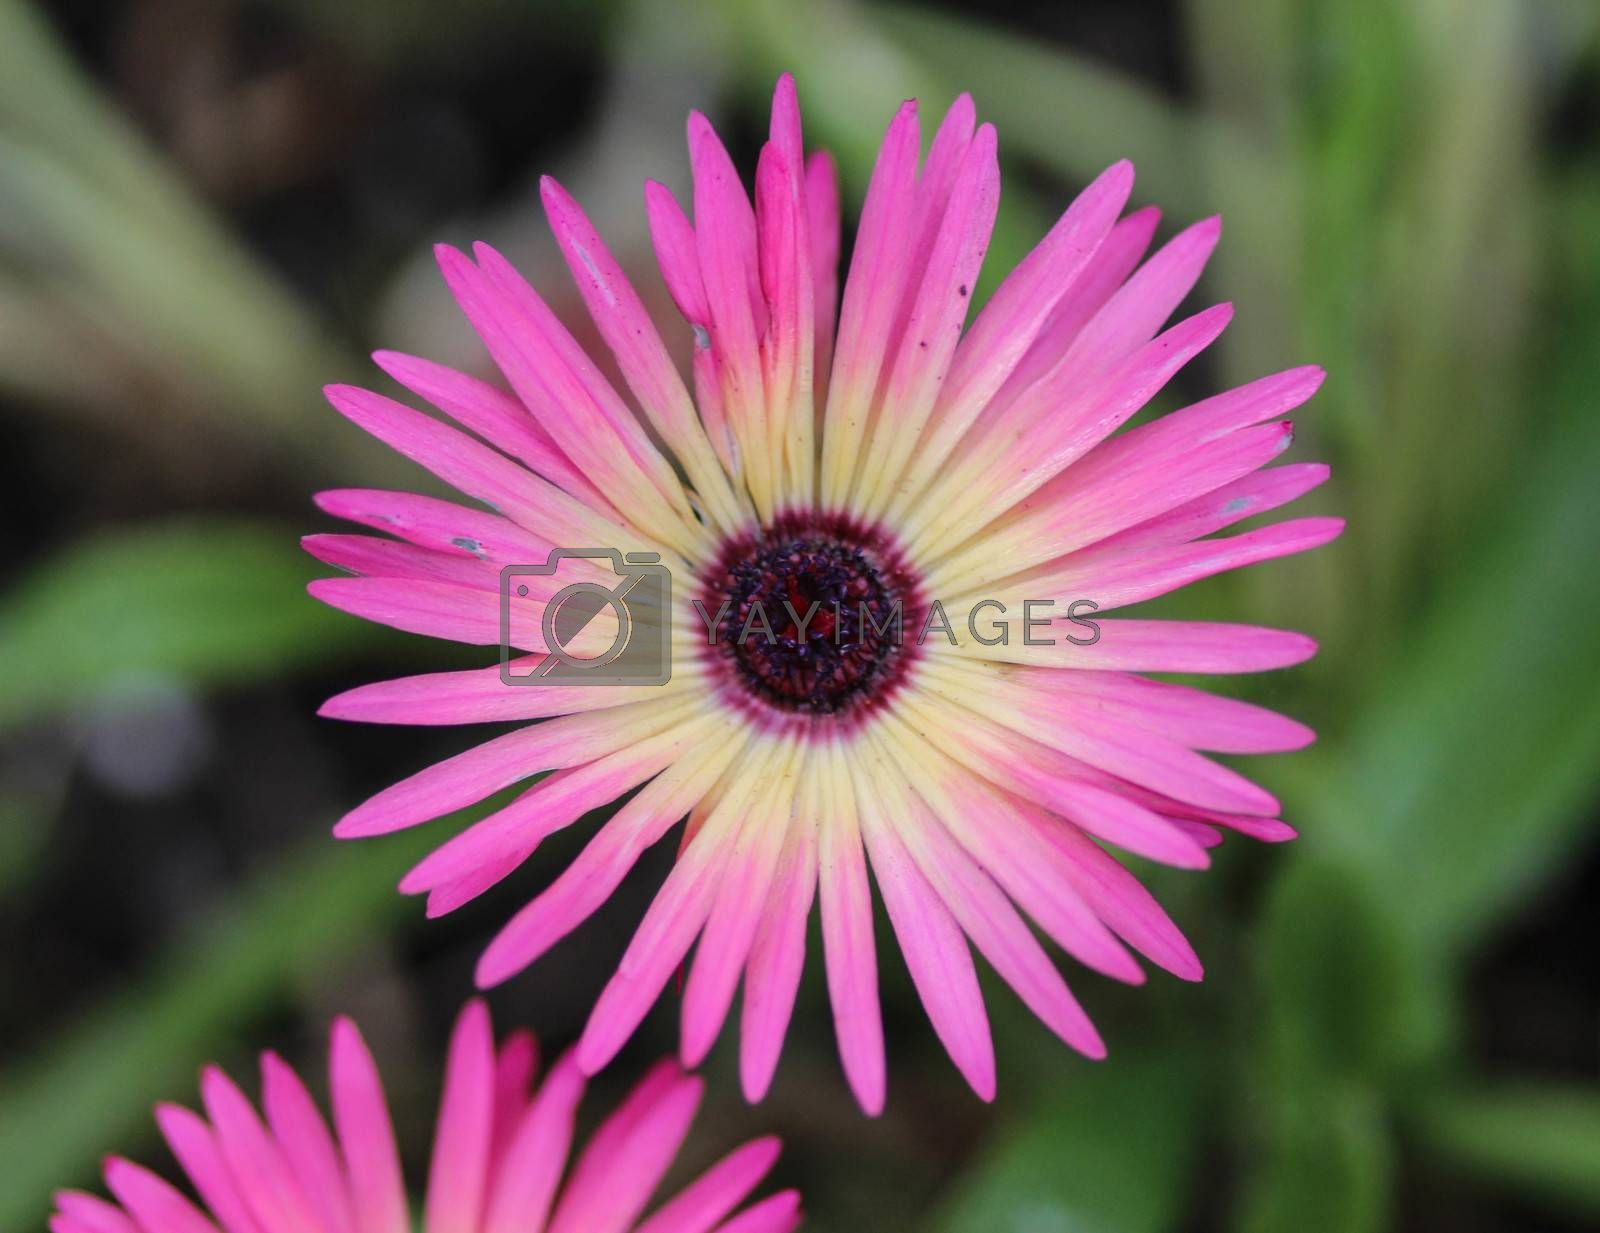 Royalty free image of Cleretum bellidiforme, commonly called Livingstone daisy or Bokbaaivygie, blooming in spring in the garden by michaelmeijer